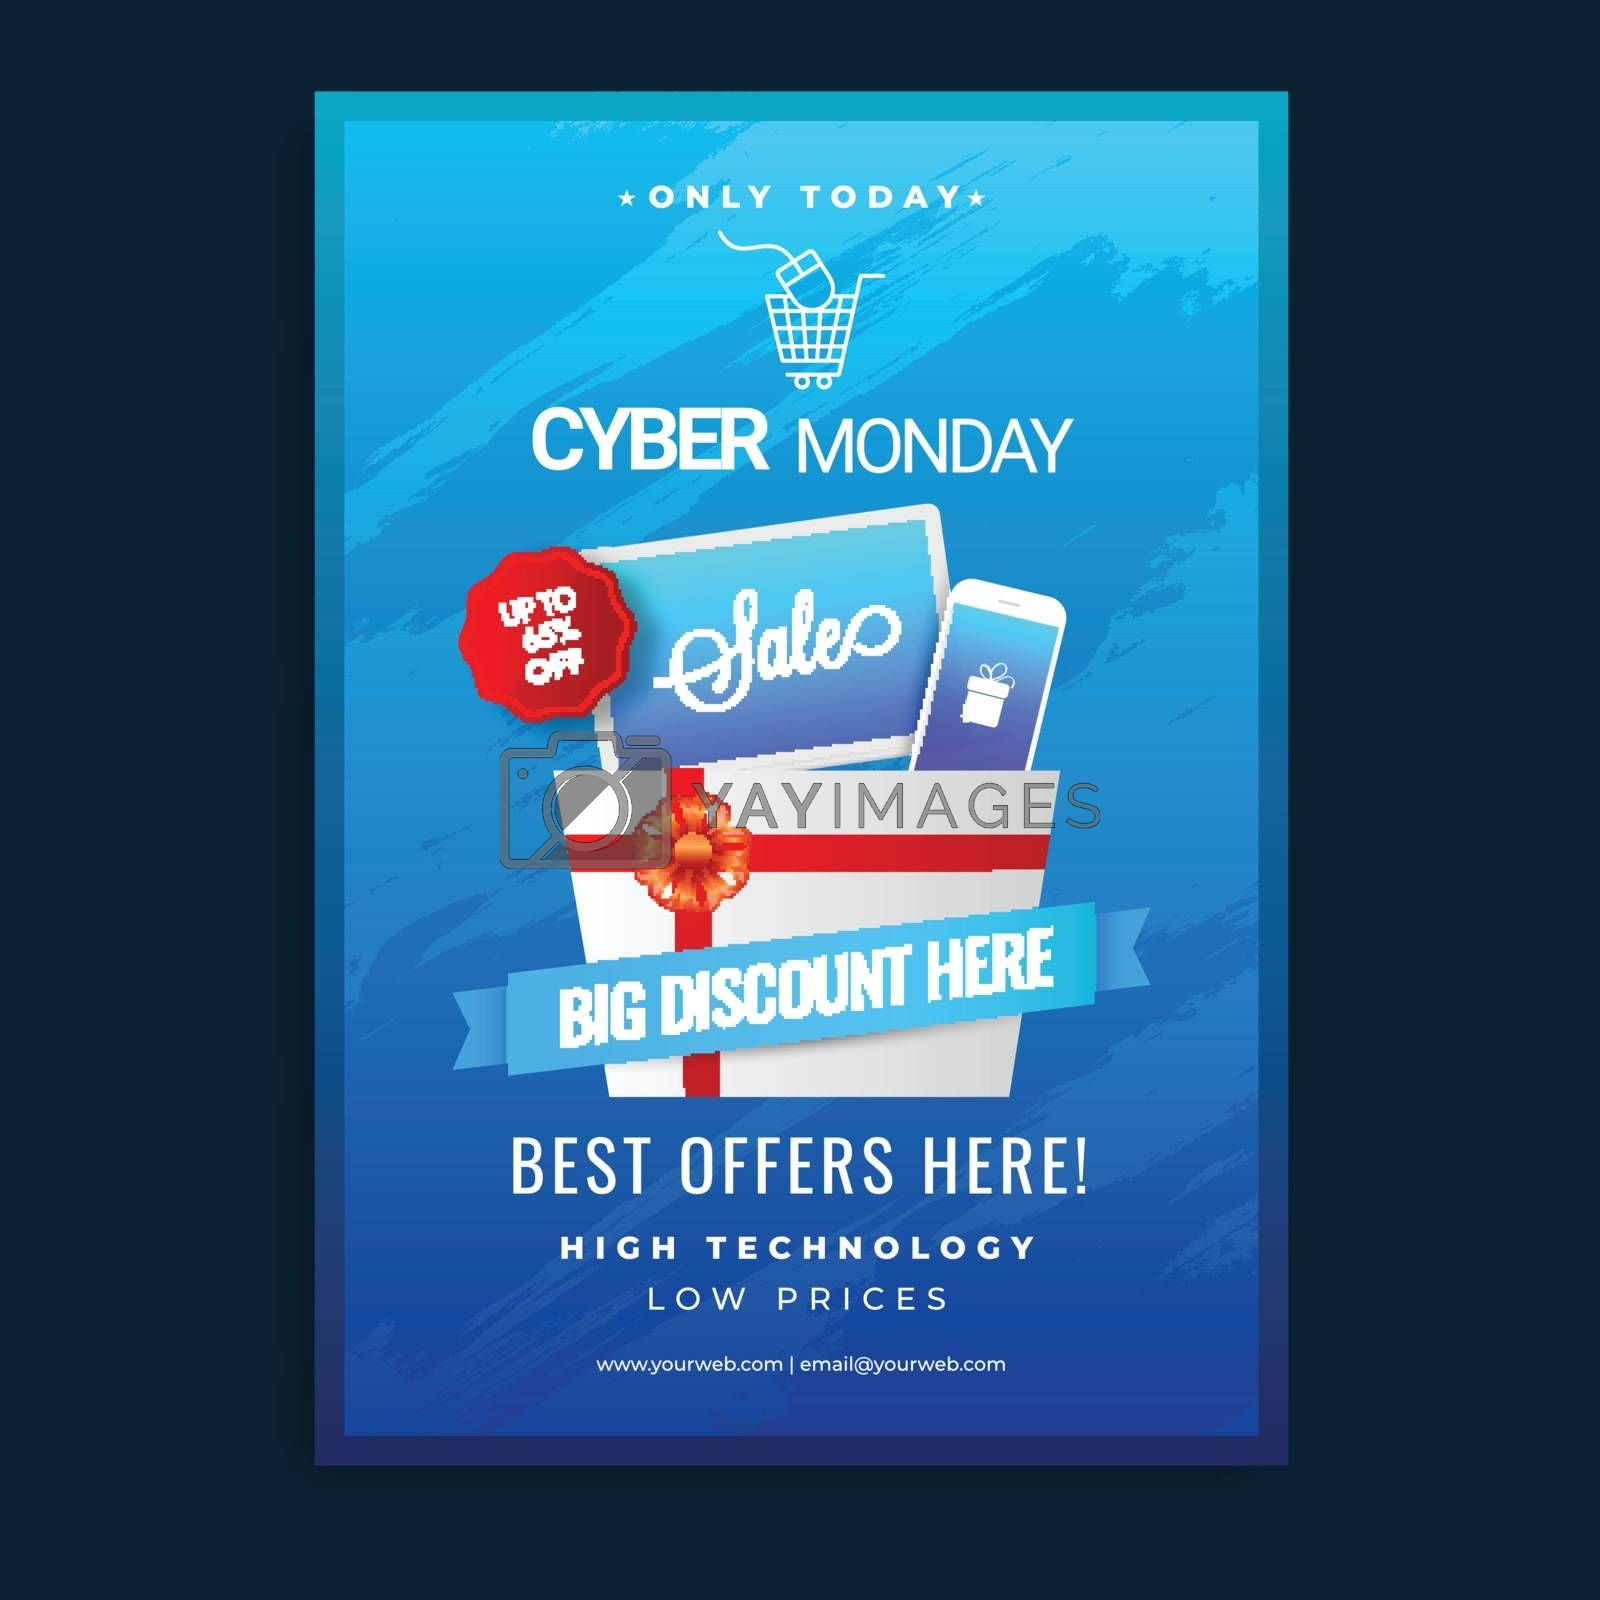 Cyber Monday sale template or flyer design with 65% discount off by aispl